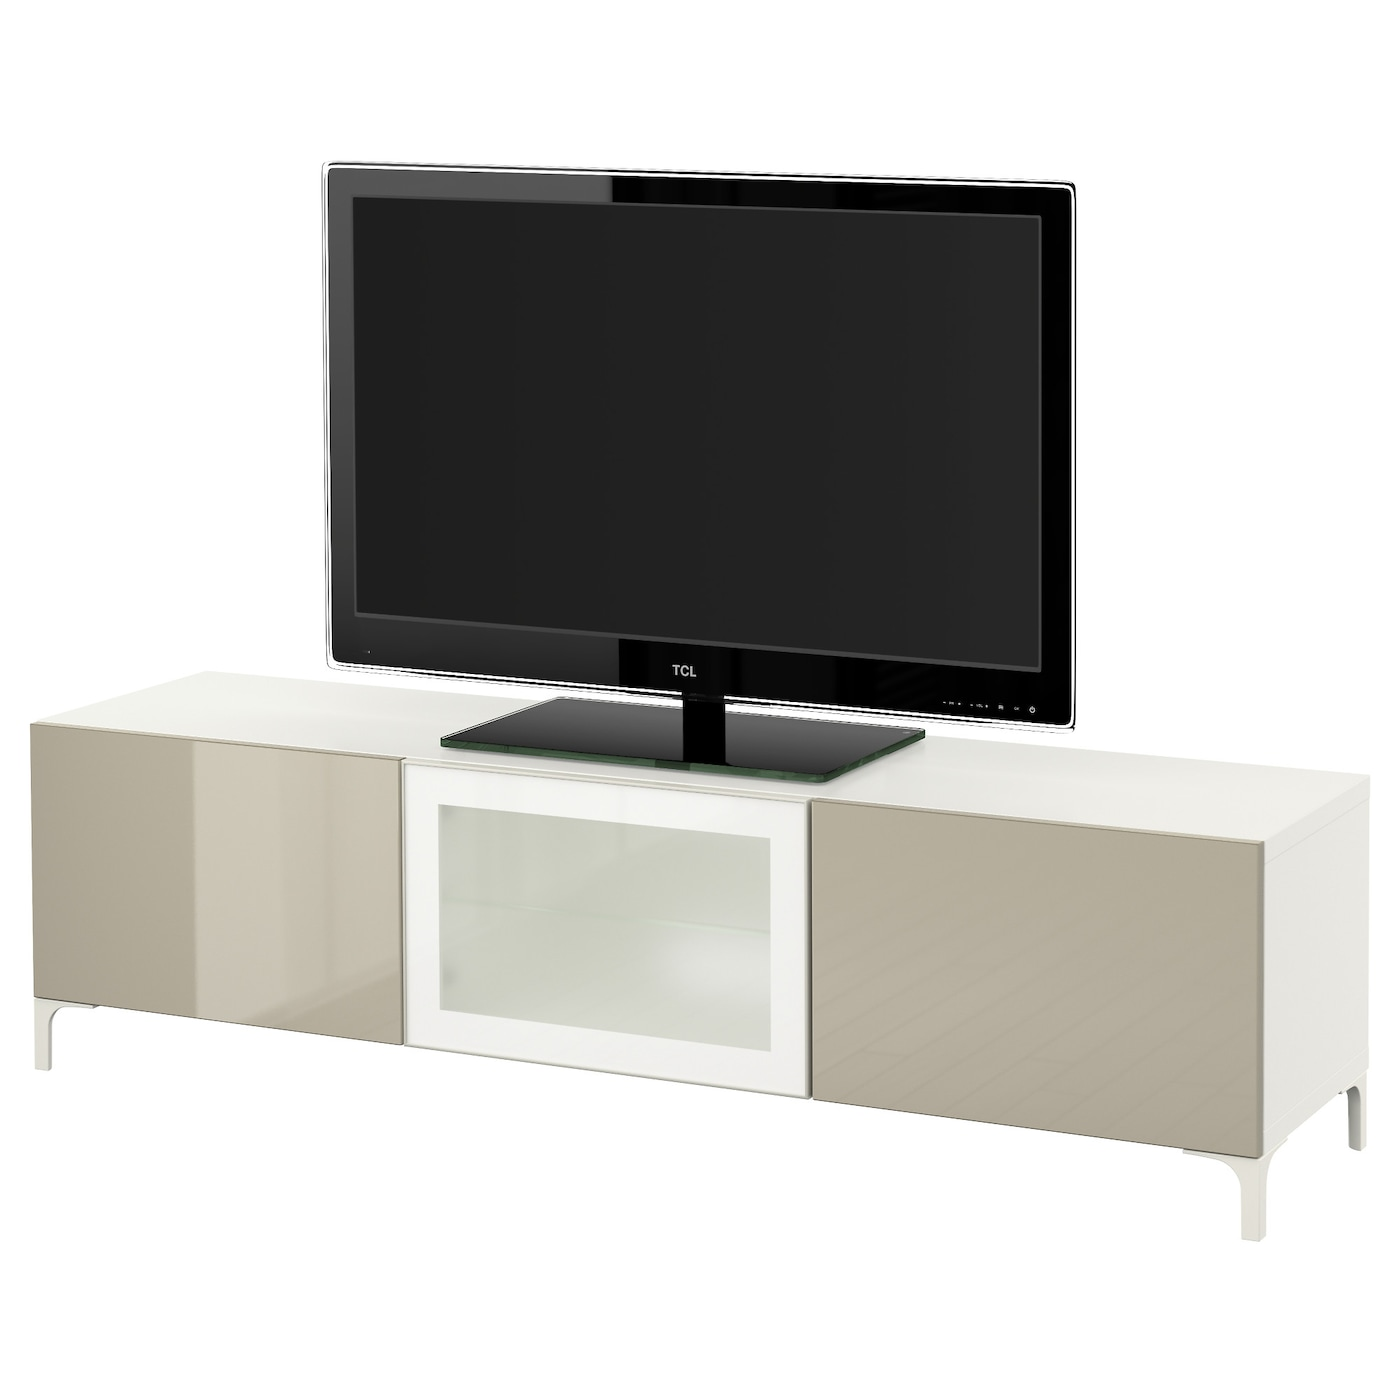 Best Tv Bench With Drawers And Door White Selsviken High Gloss Beige Frosted Glass 180x40x48 Cm